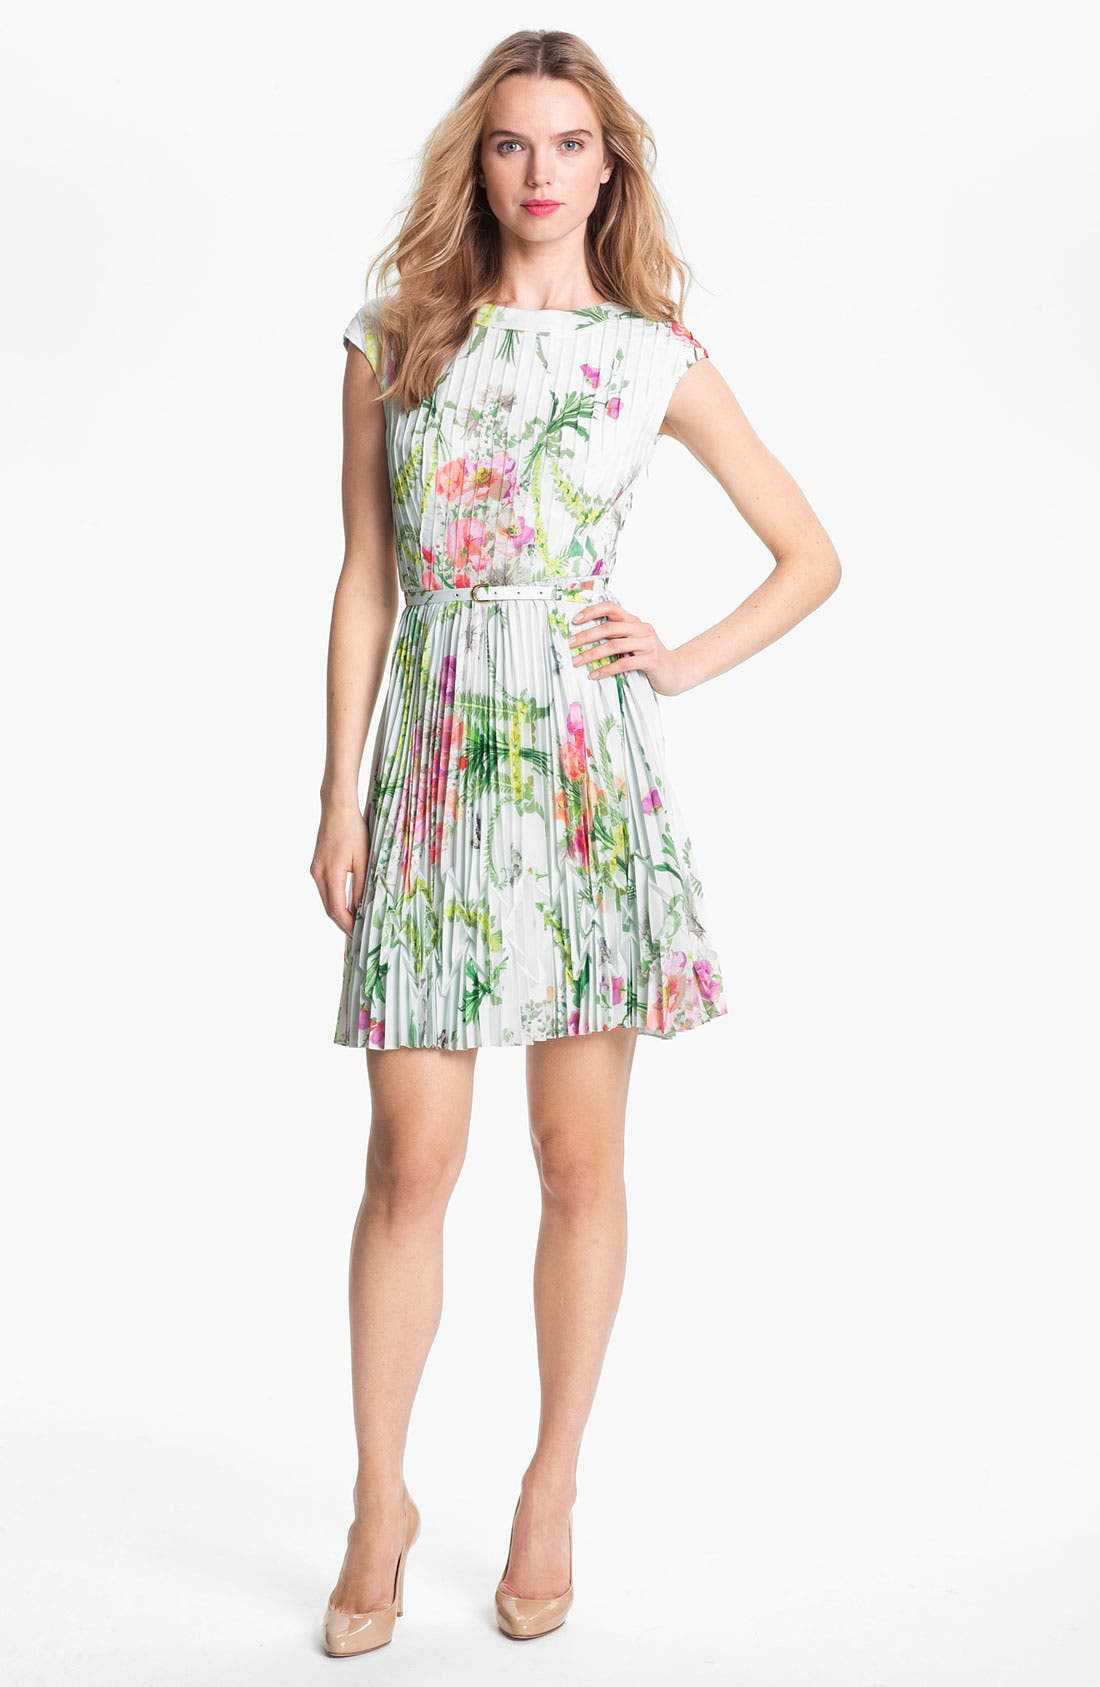 TED BAKER LONDON 'Wallpaper' Pleated A-Line Dress, Main, color, 331